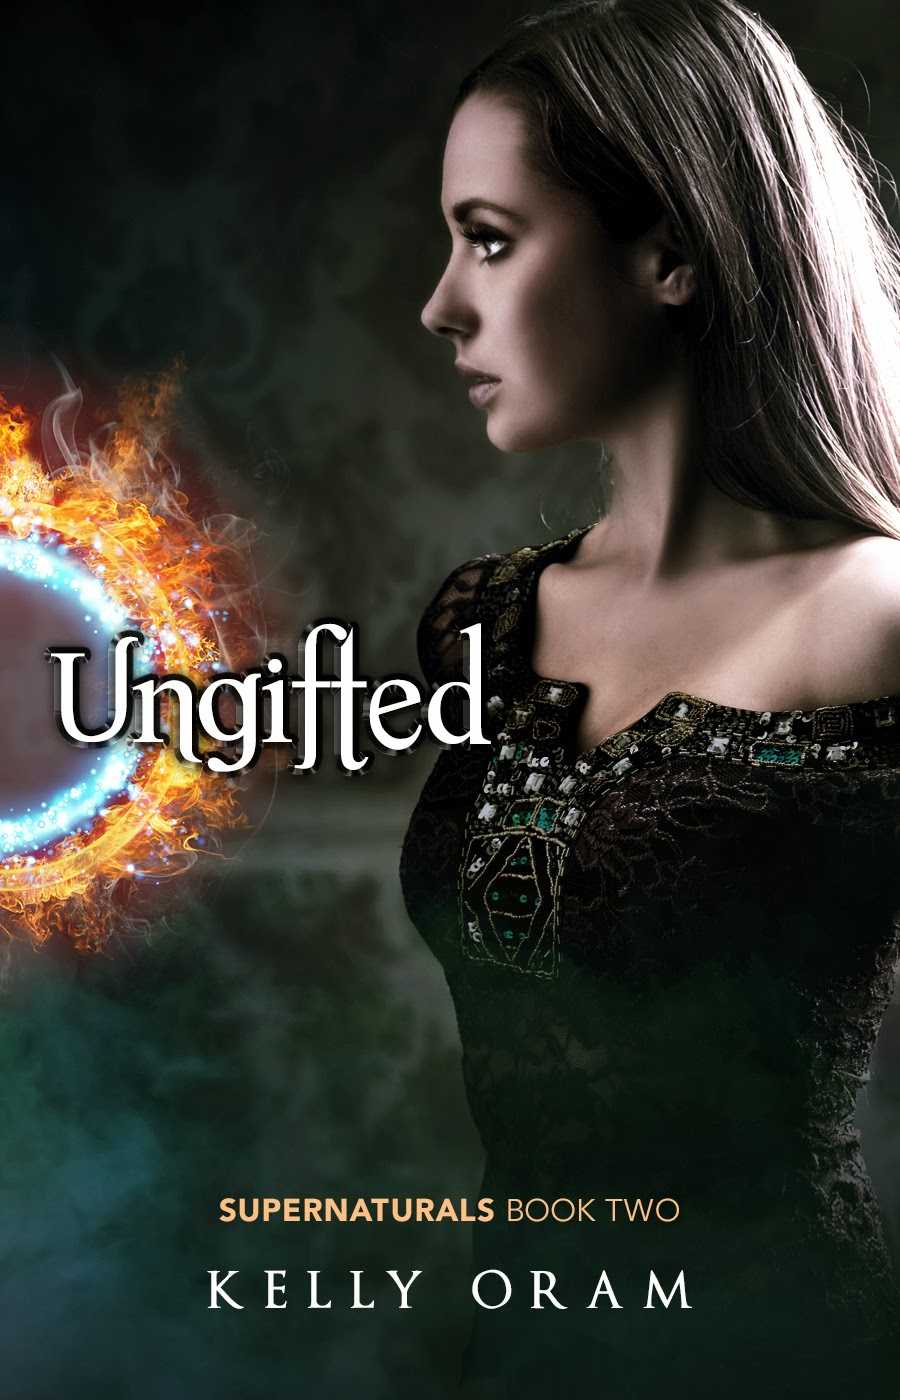 Ungifted will be available FEB. 25, 2014 .